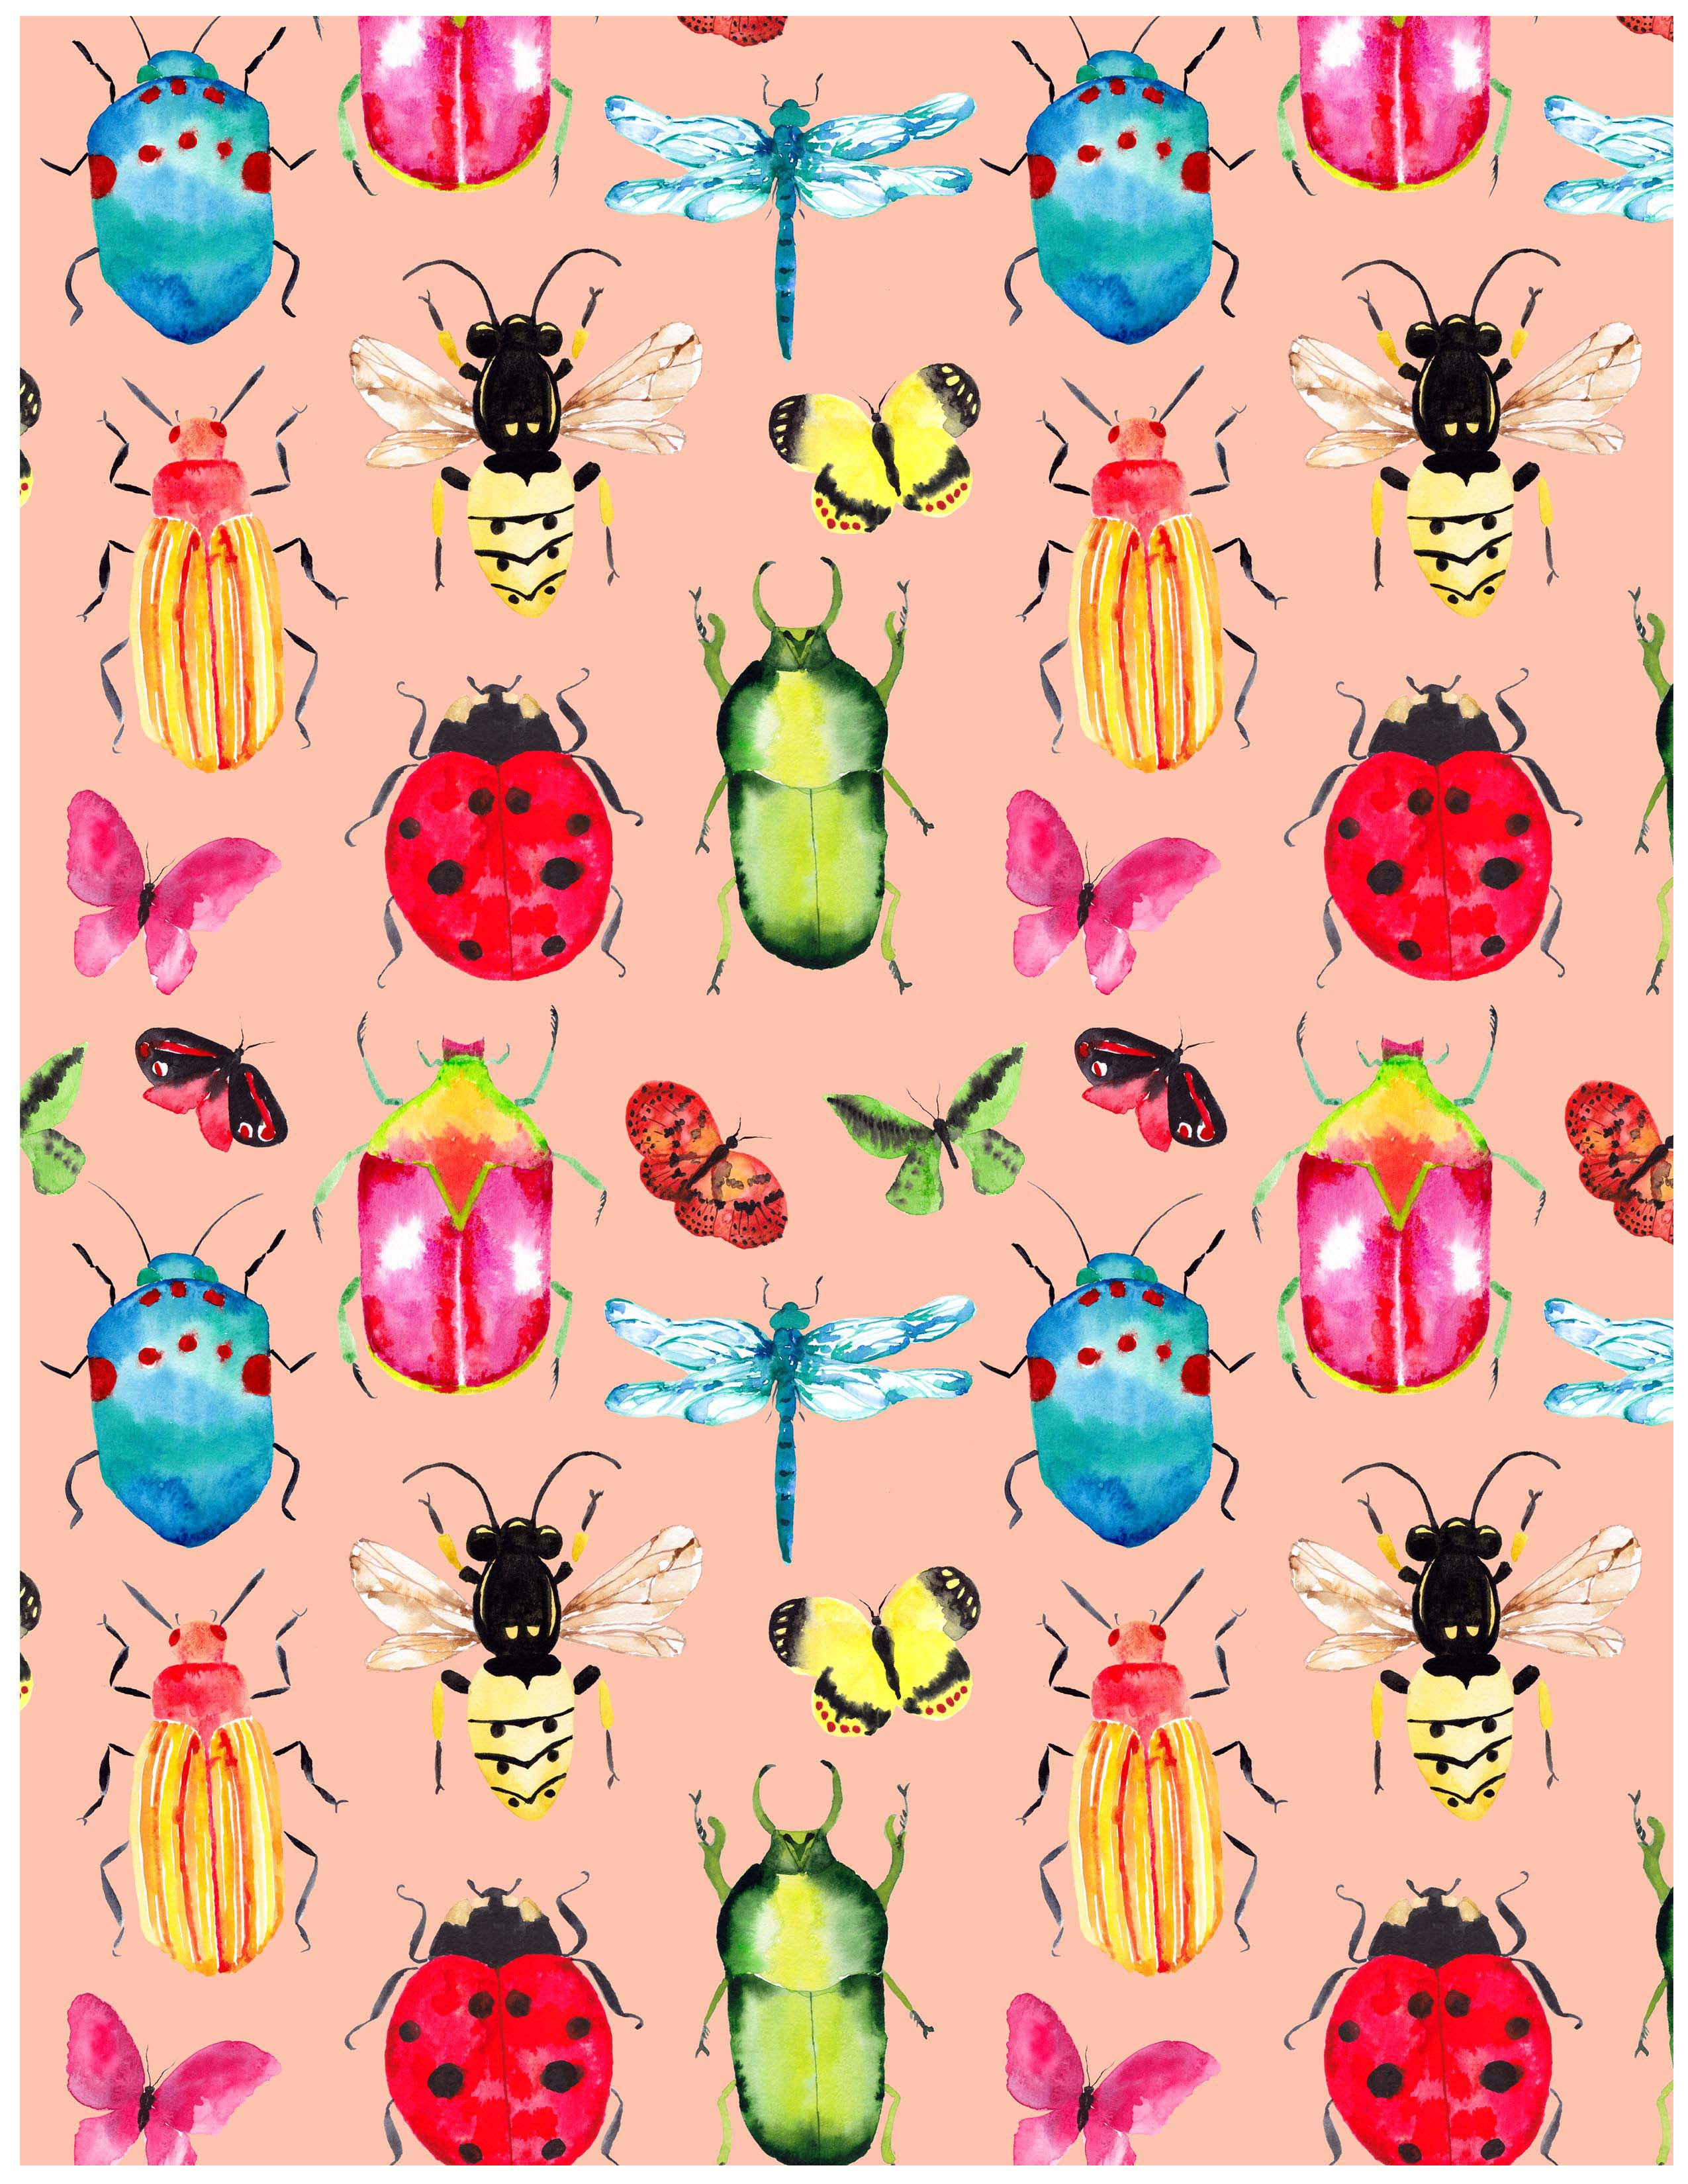 Sara Berrenson Illustration beetle and ladybug pattern